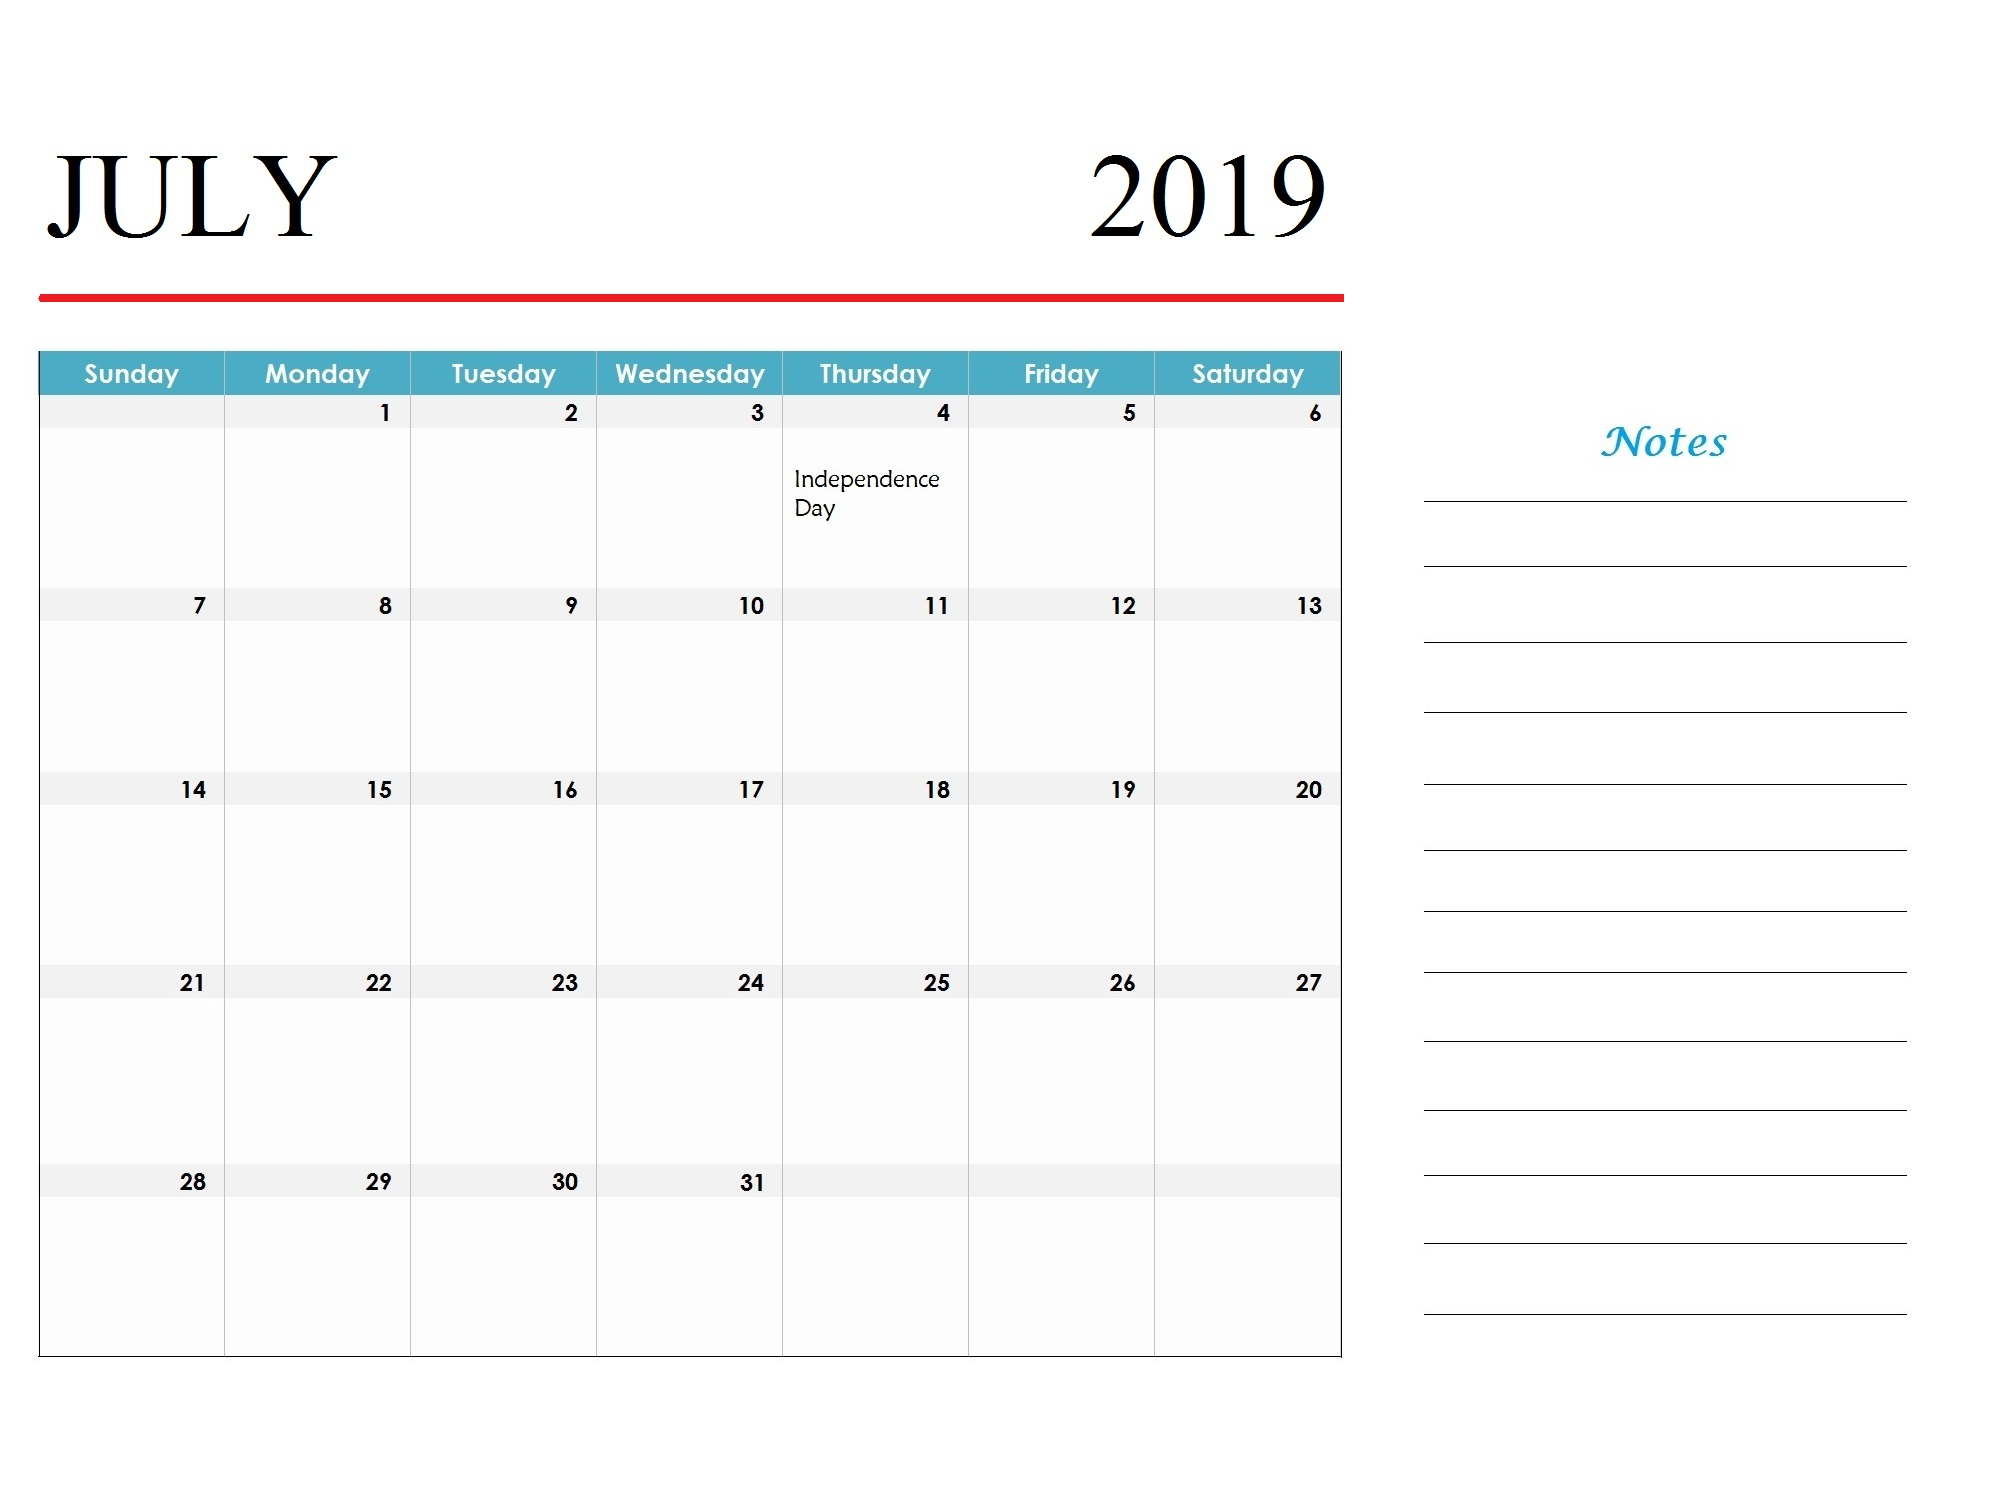 July 2019 Holidays Calendar Template